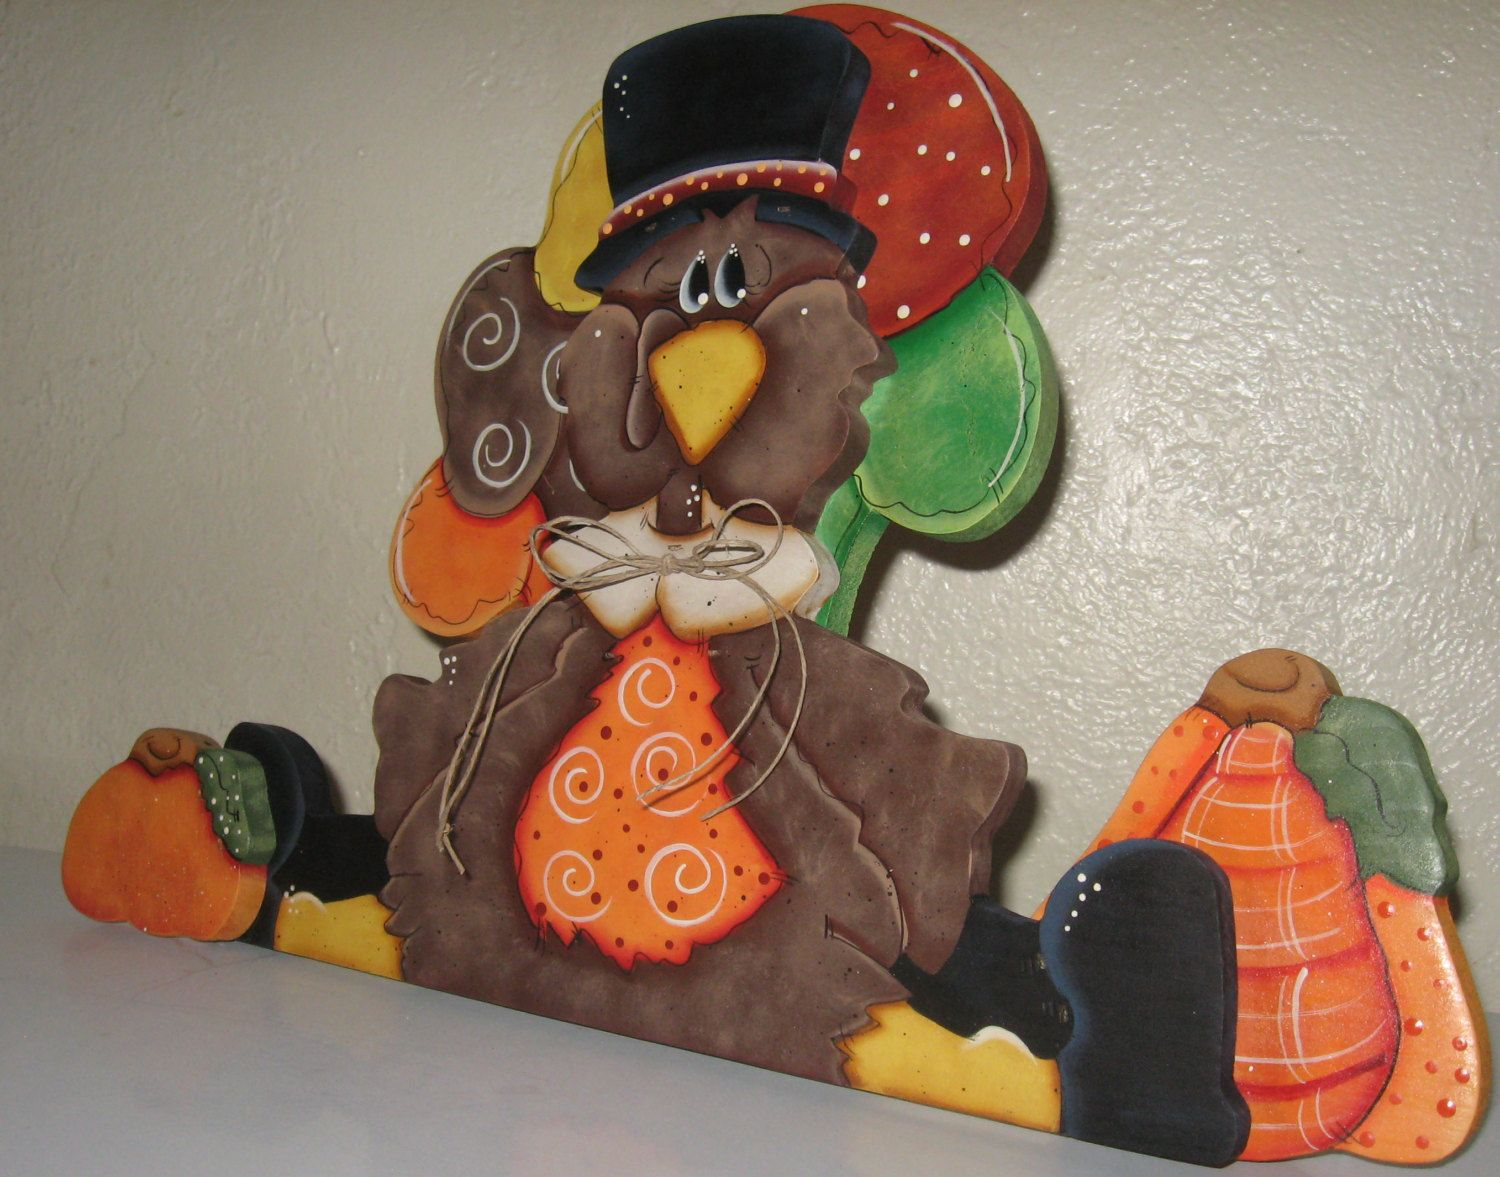 Thanksgiving turkey decor - Thanksgiving Shelf Sitters Turkey Decor Table Centerpieces Holiday Shelf Sitters Give Thanks